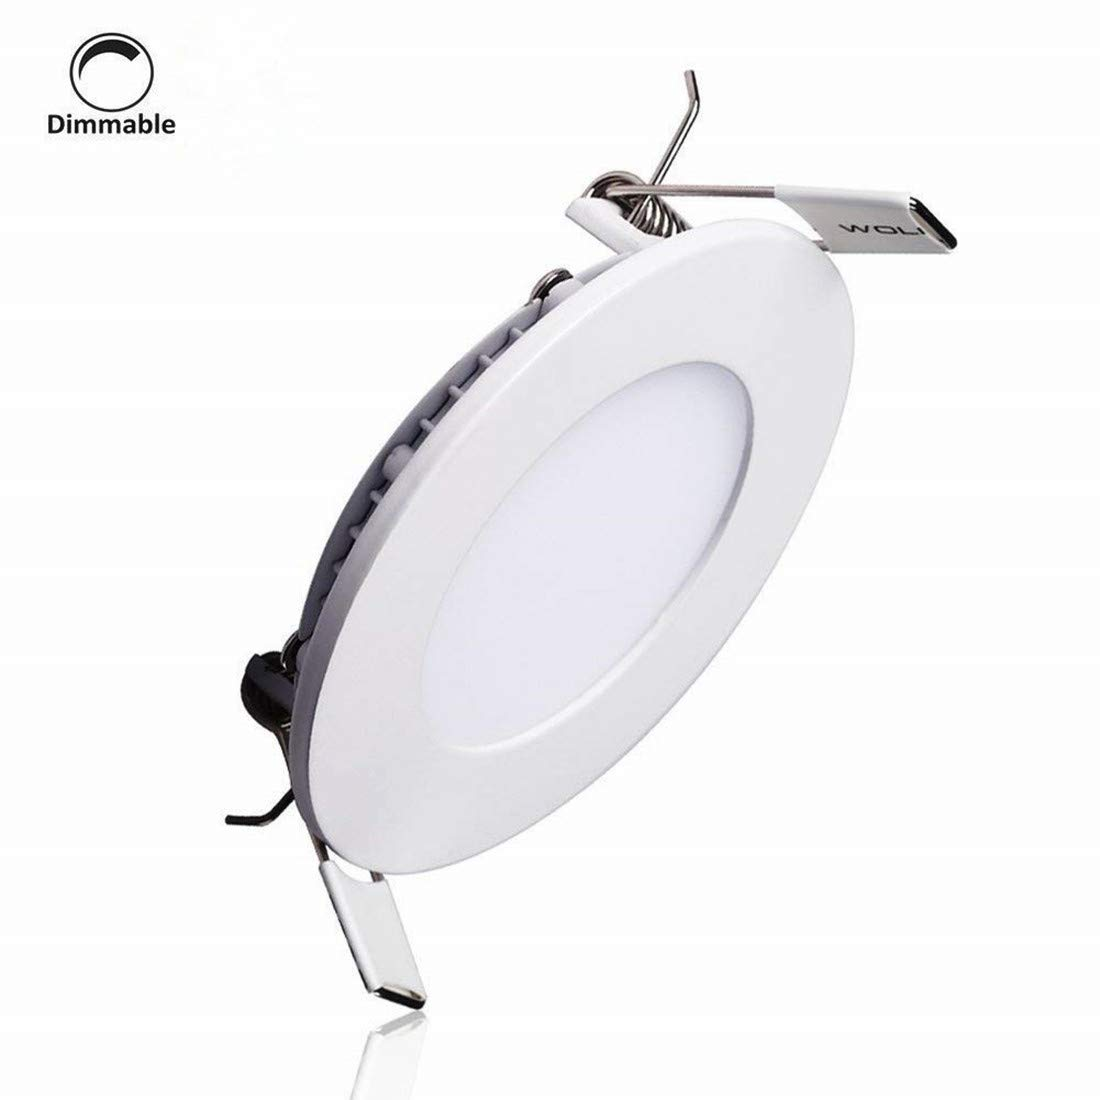 LAIN 9W LED Panel Light Fixture Dimmable Round Ultrathin Ceiling Light Fixtures,60W Incandescent Equivalent,Recessed Downlight Flat Lamp,3000K Warm White,720lm,4.9 Inch Cut Hole Home Office Lighting